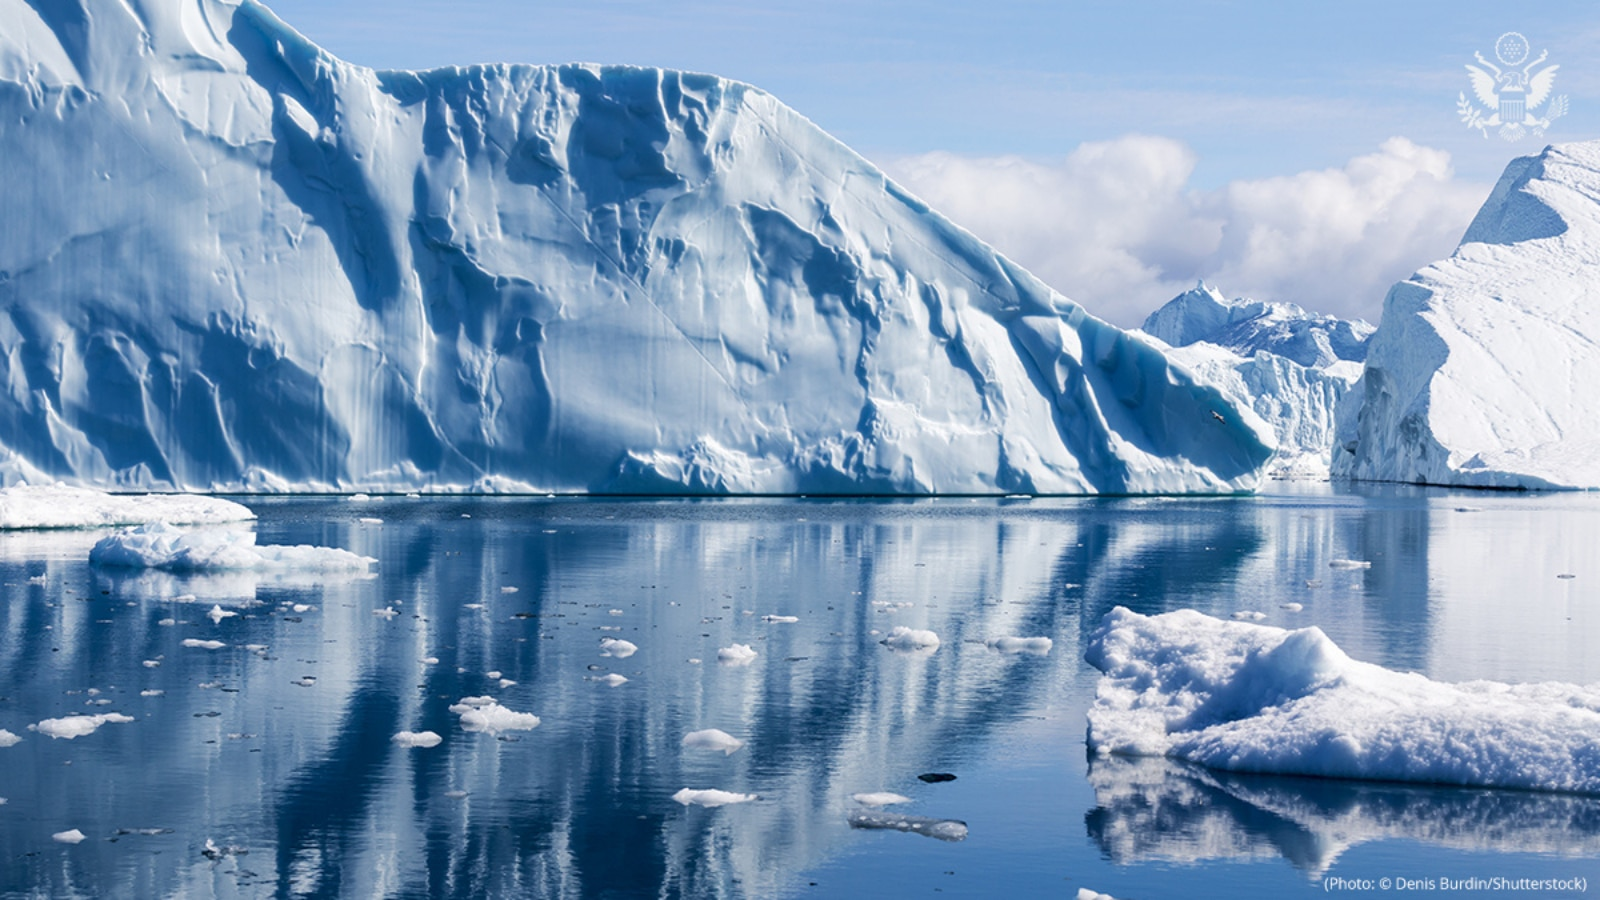 Arctic research has important implications for climate change adaptation, mitigation, and resilience around the world.